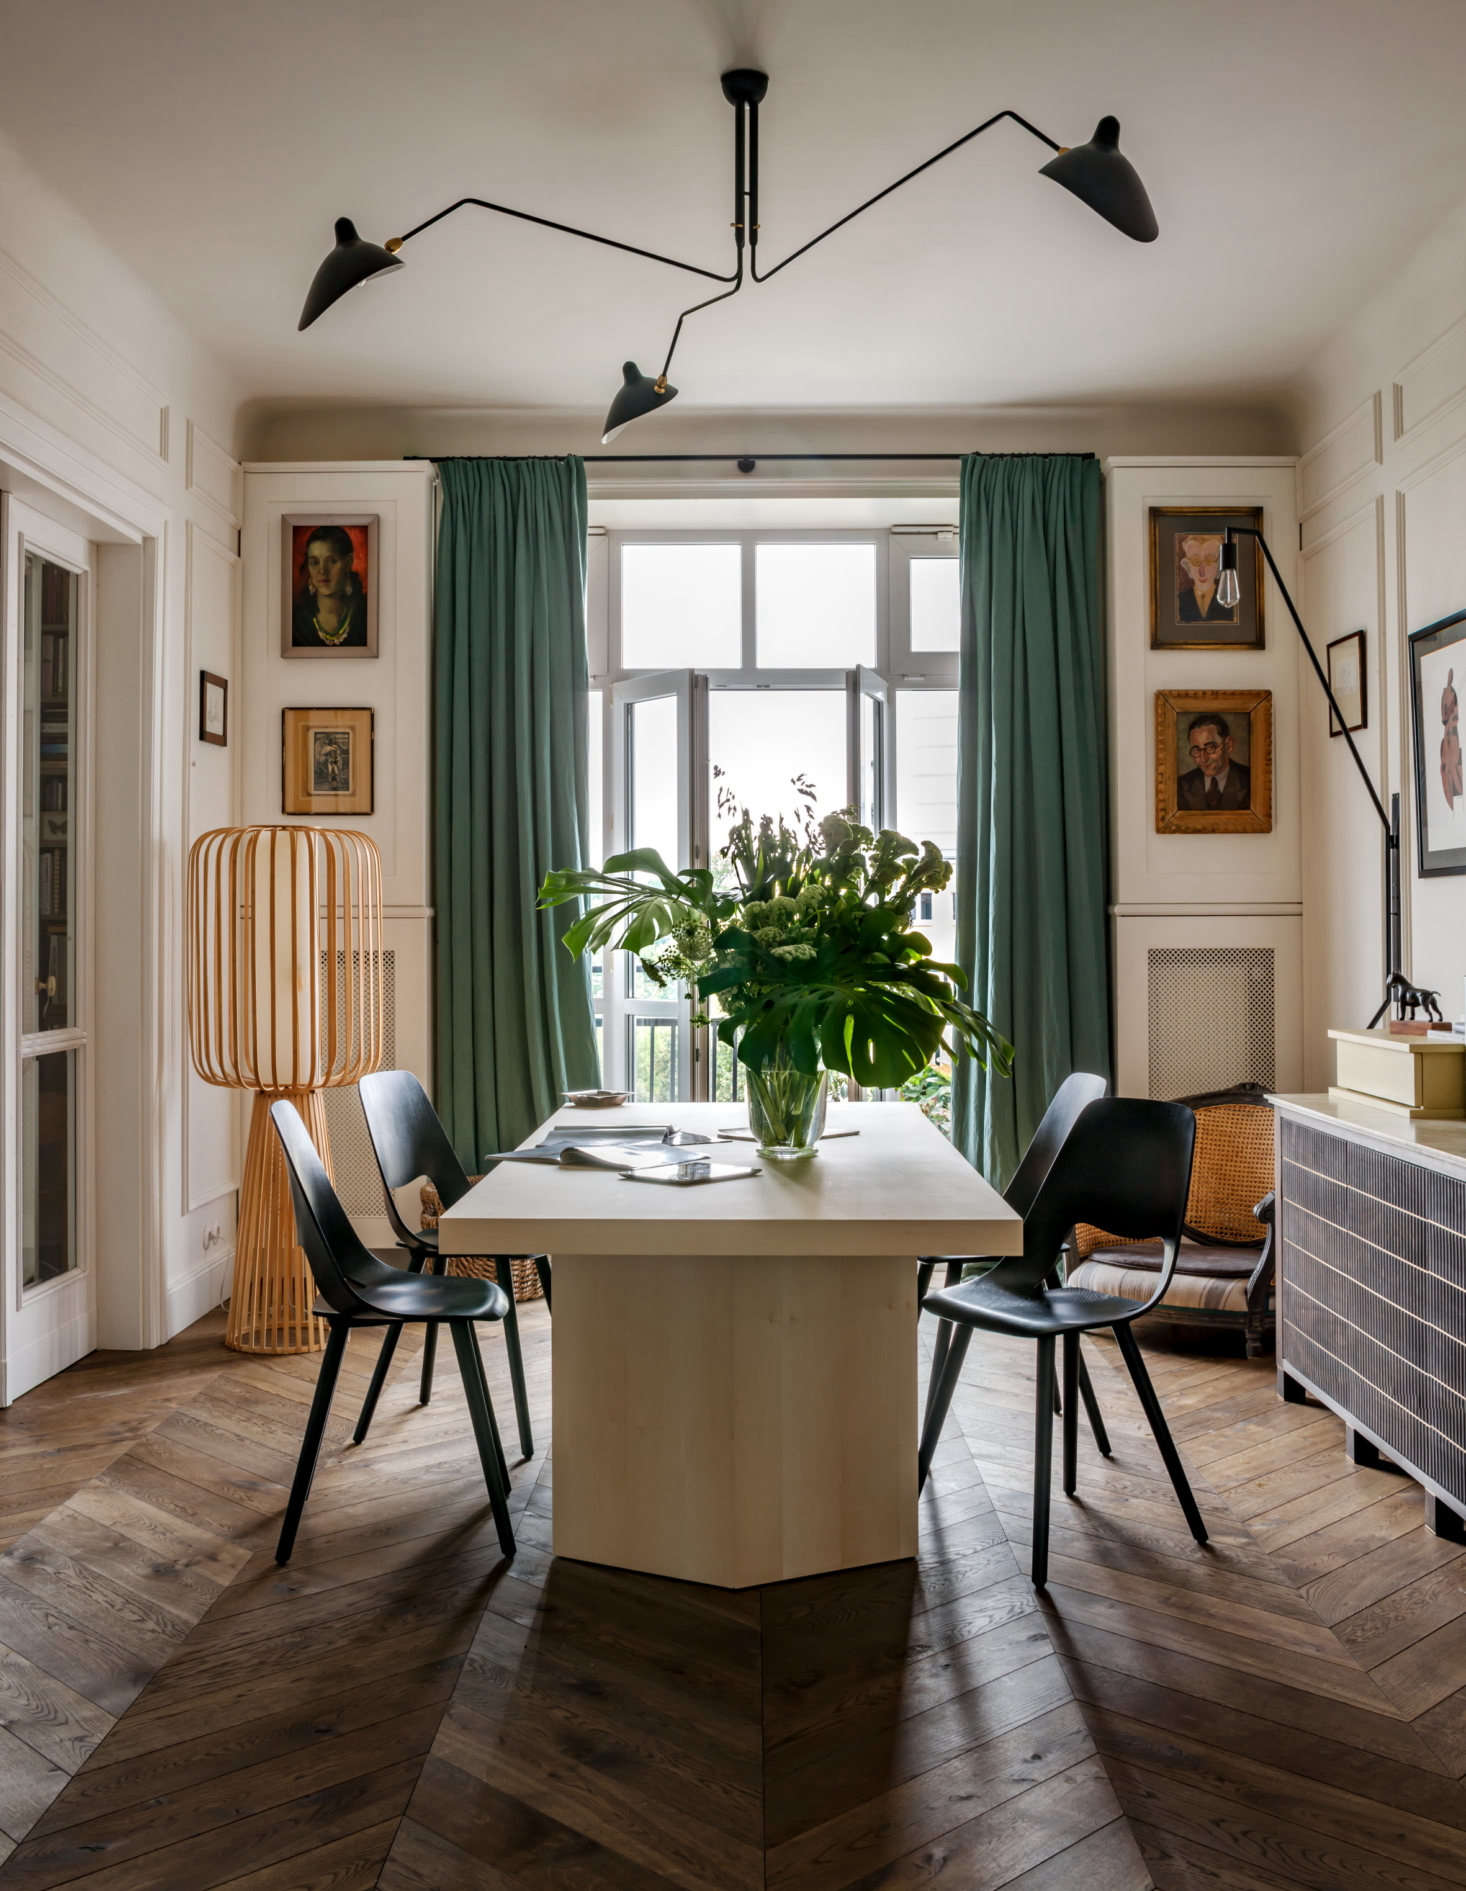 Floor-to-ceiling drapes were made from Fadini Borghi linen by Pierre Frey, the iconic French maker of fabrics and wall coverings. Green is the owner&#8